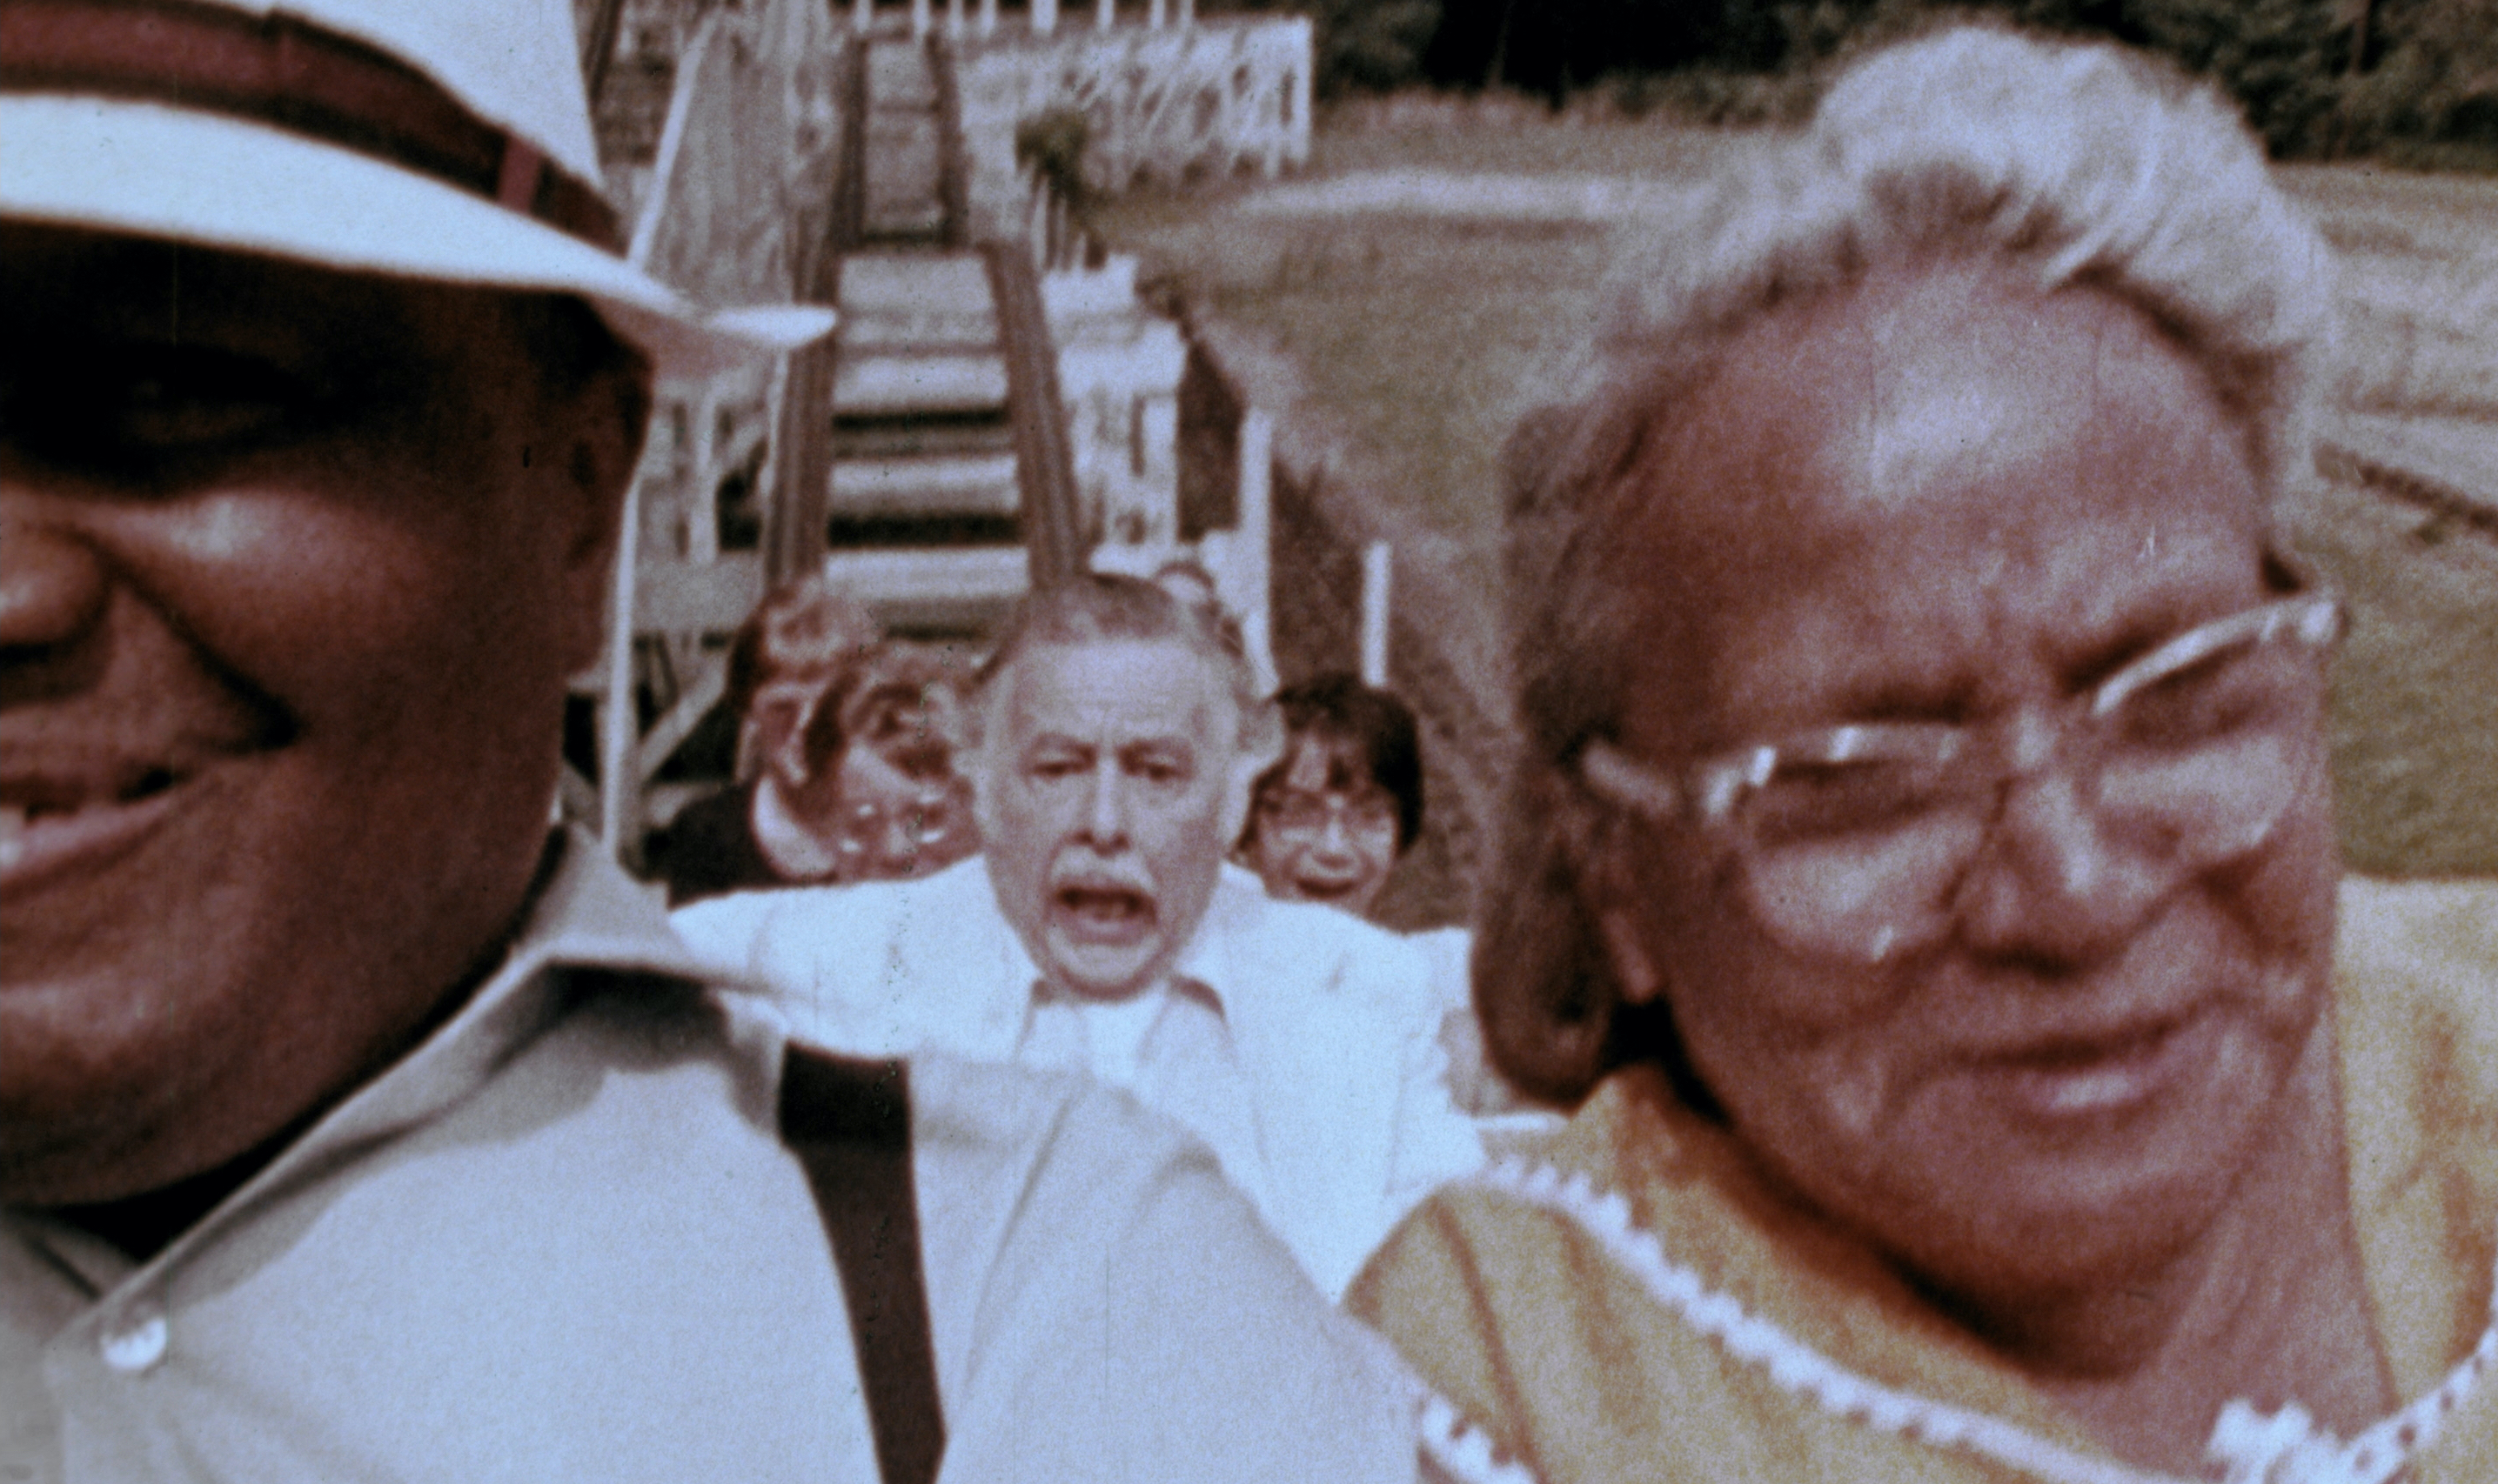 An elderly man in a black suit screams while riding a roller coaster in George A. Romero's The Amusement Park